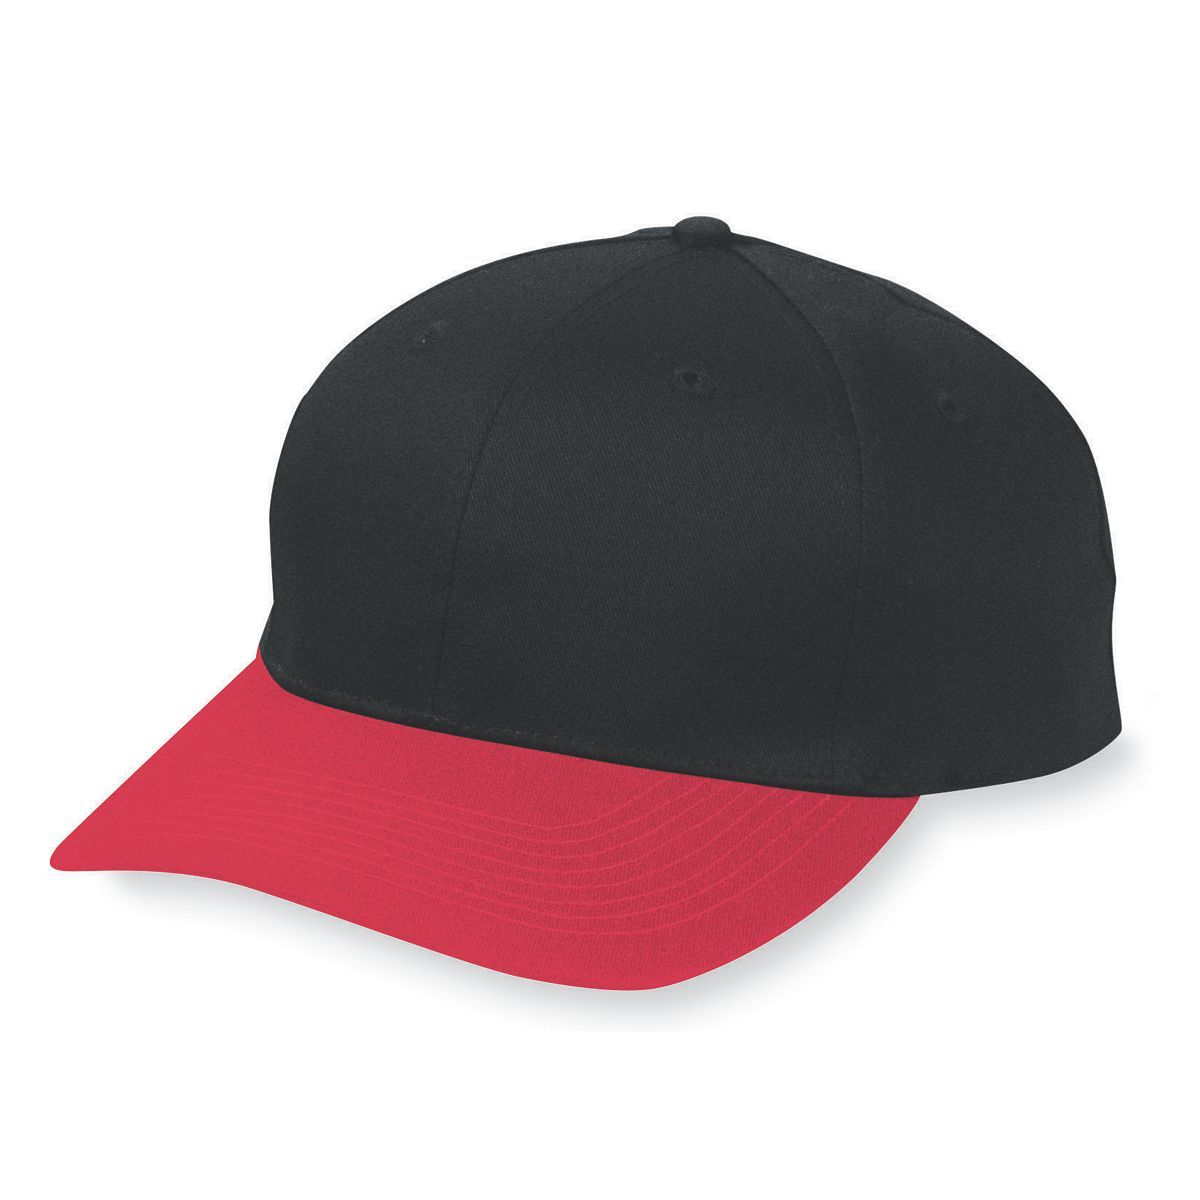 Six-Panel Cotton Twill Low-Profile Cap - BLACK/RED